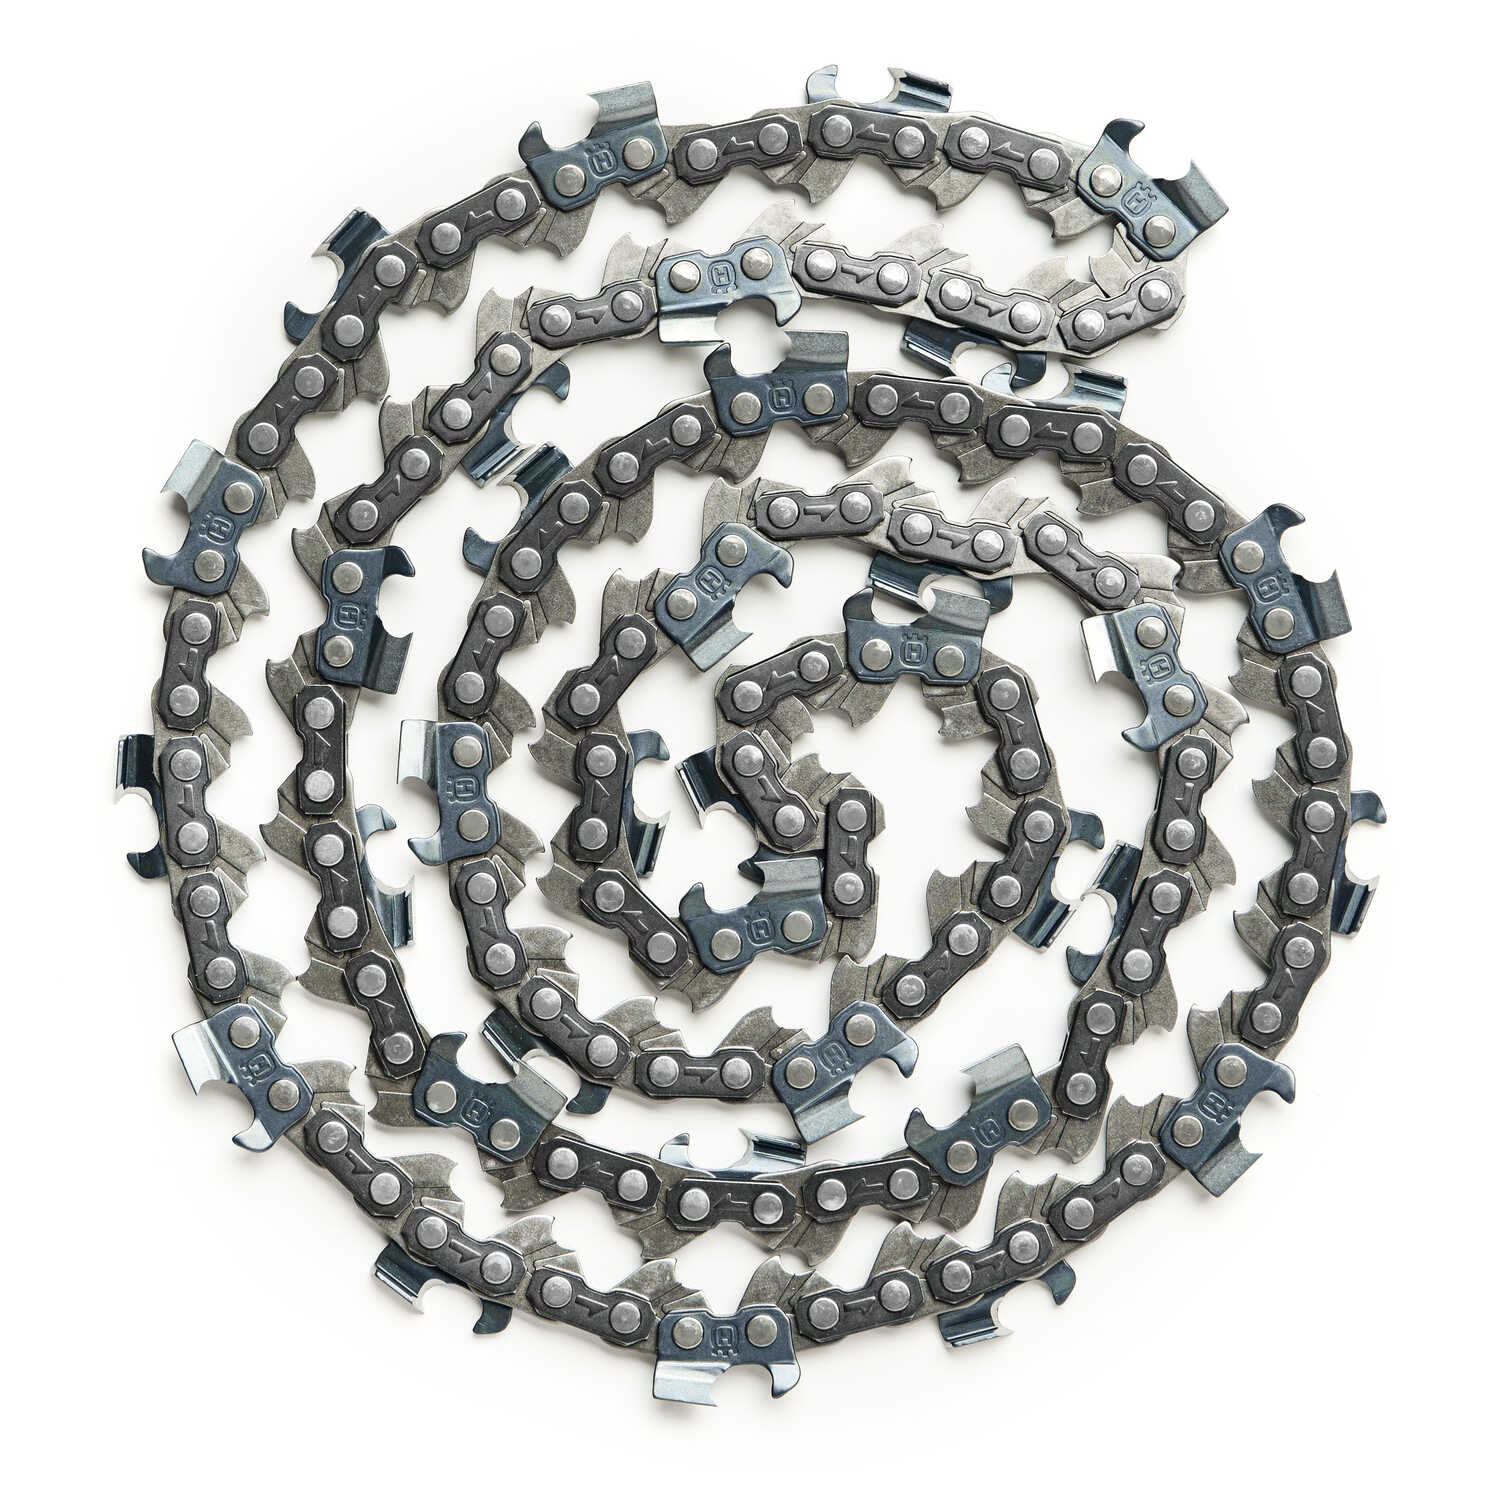 Husqvarna  24 in. 84 links Chainsaw Chain